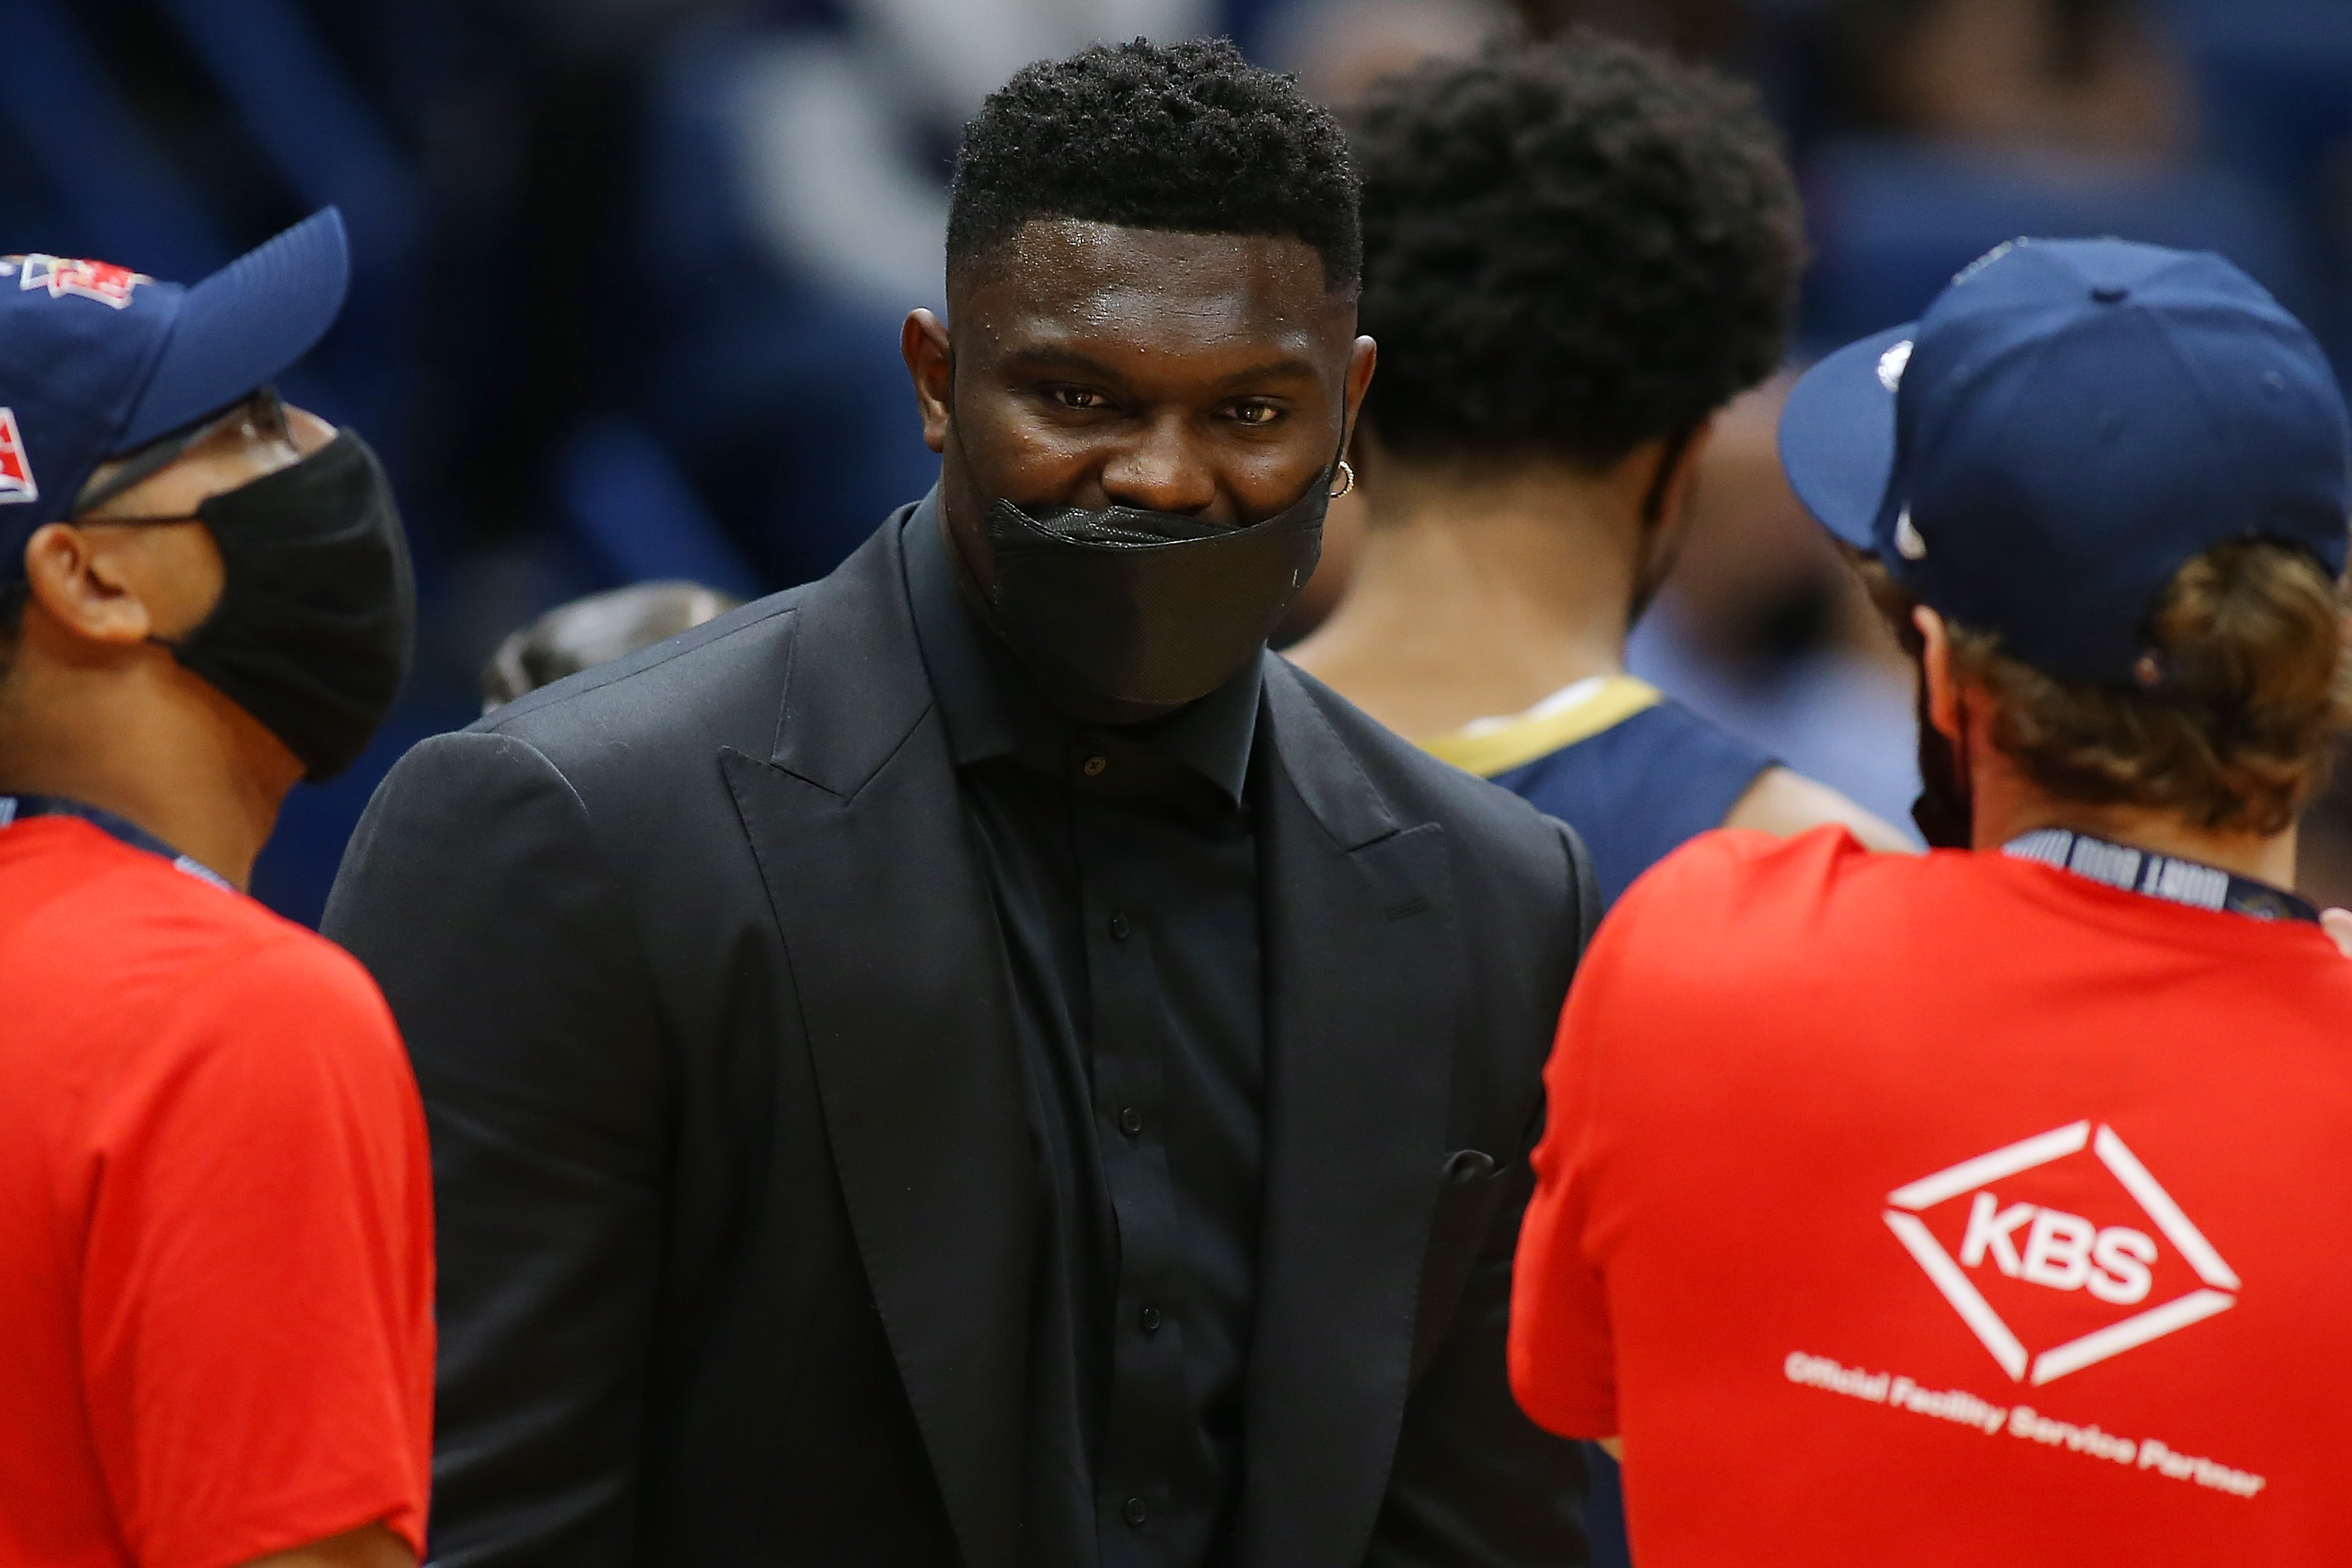 Zion Williamson #1 of the New Orleans Pelicans reacts during the second half against the Philadelphia 76ers at the Smoothie King Center on October 20, 2021 in New Orleans, Louisiana.